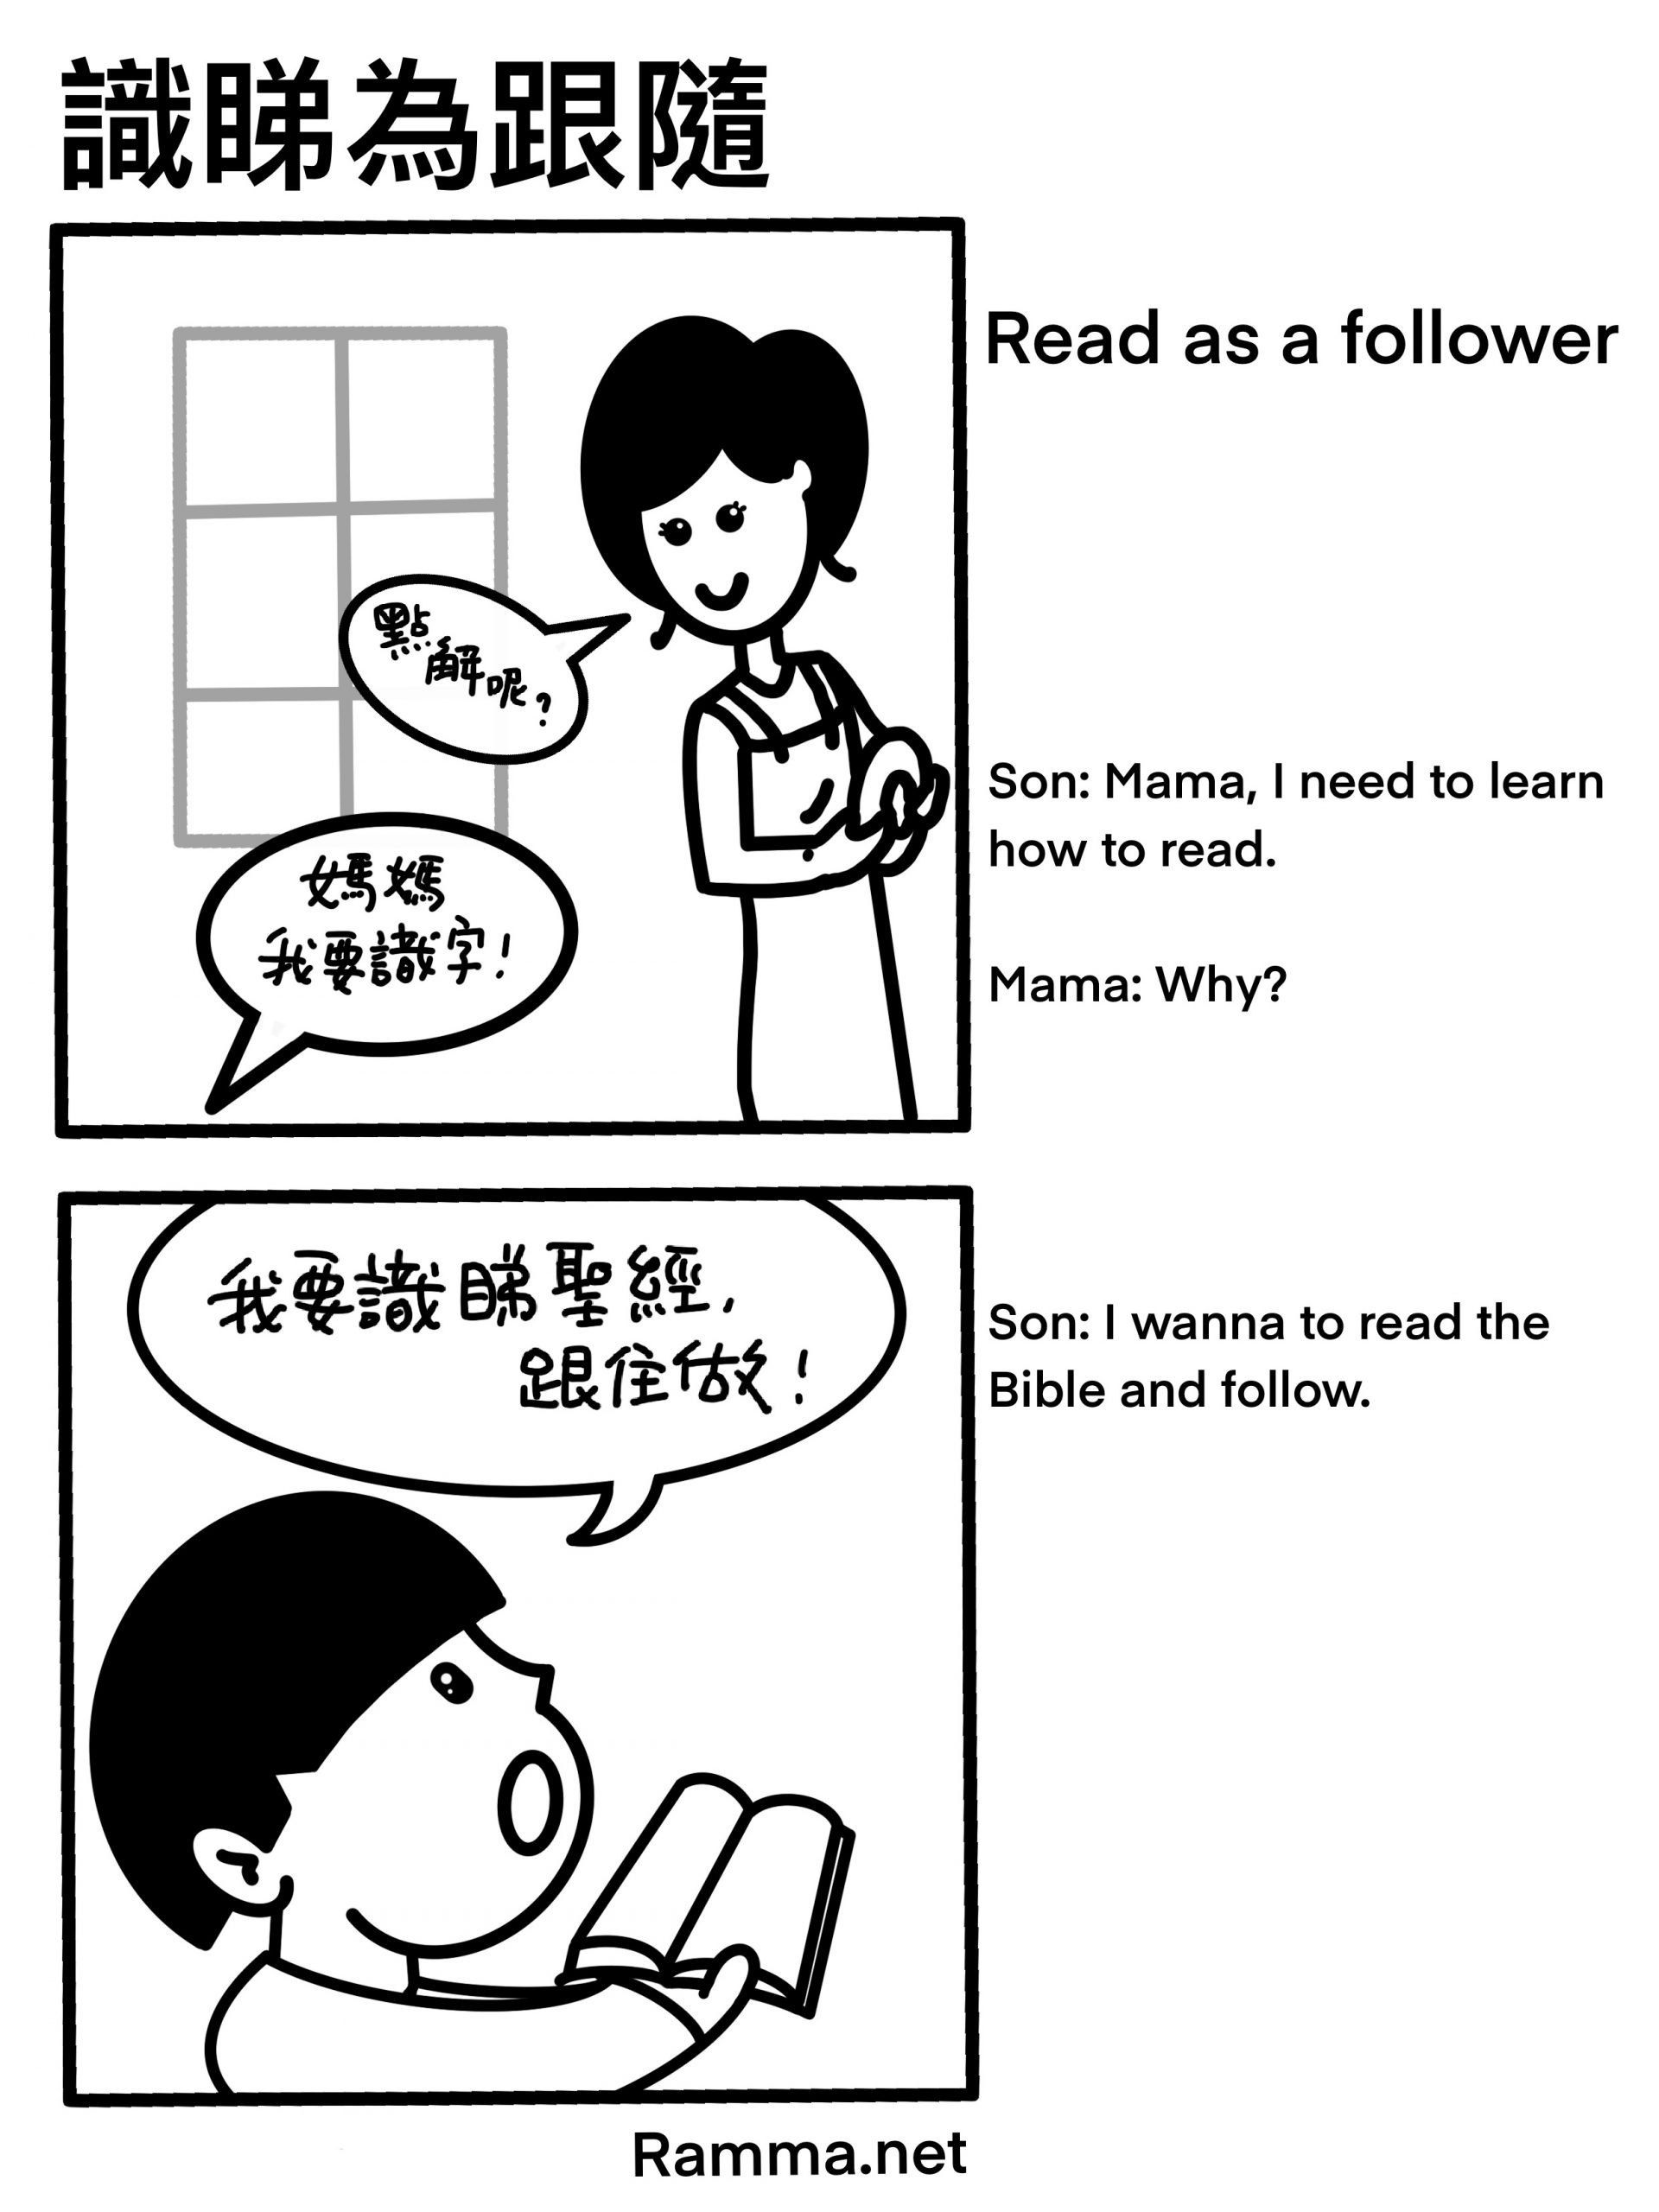 識睇為跟隨|Read as a follower